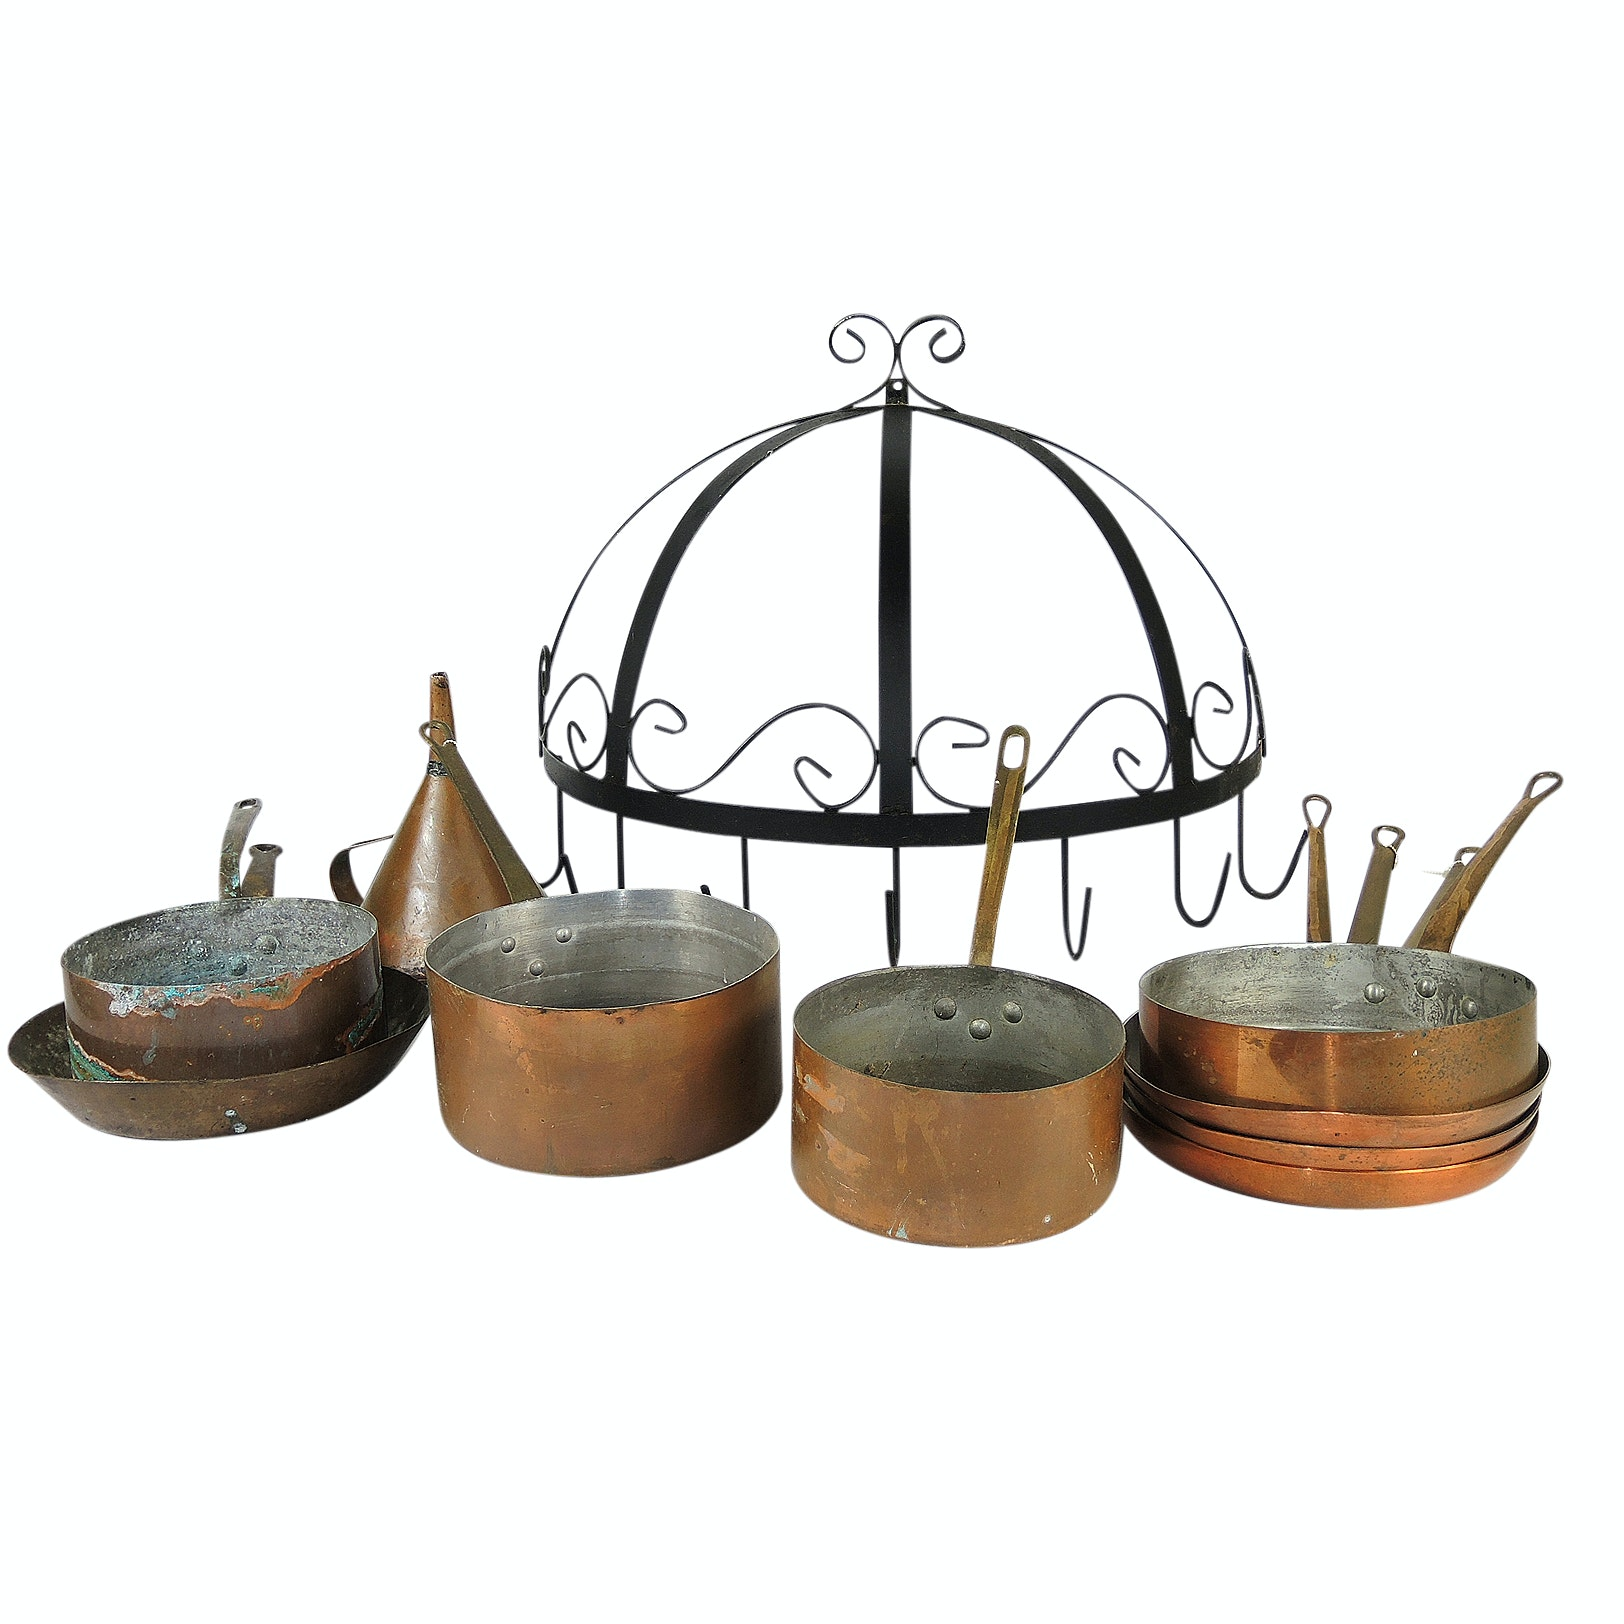 Copper Clad Pots and Pans with Hanging Rack